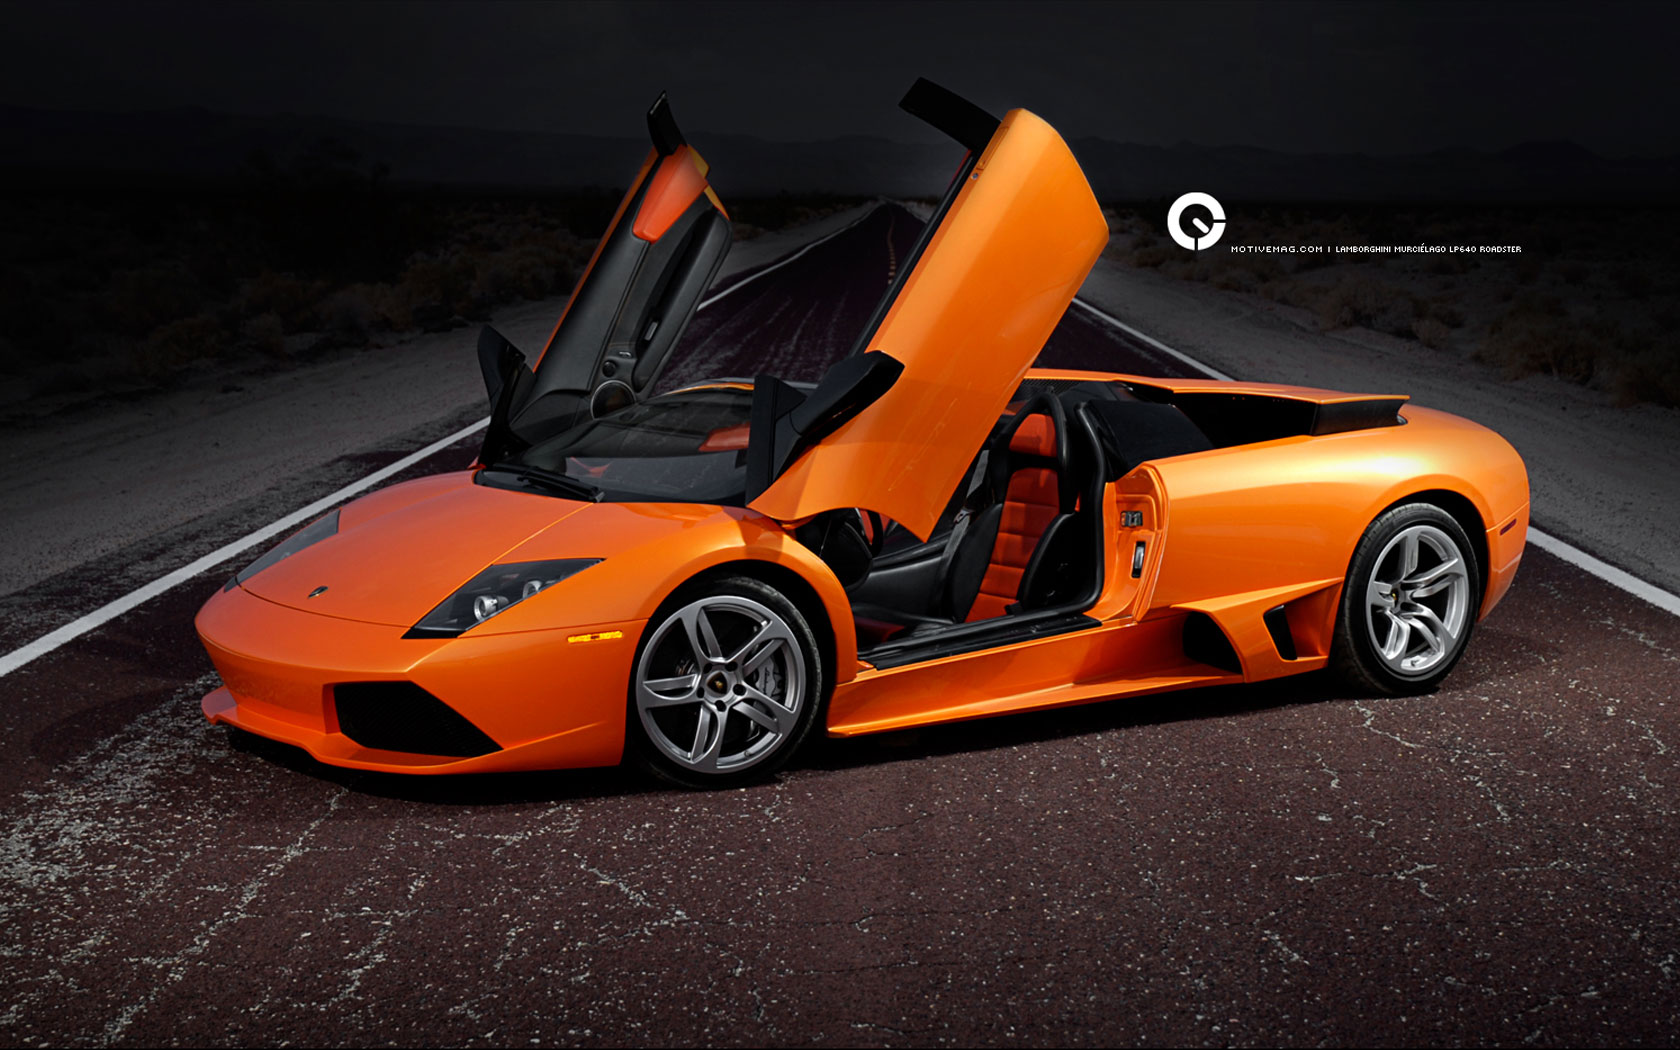 Lamborghini Murcielago Widescreen Wallpapers HD Wallpapers 1680x1050